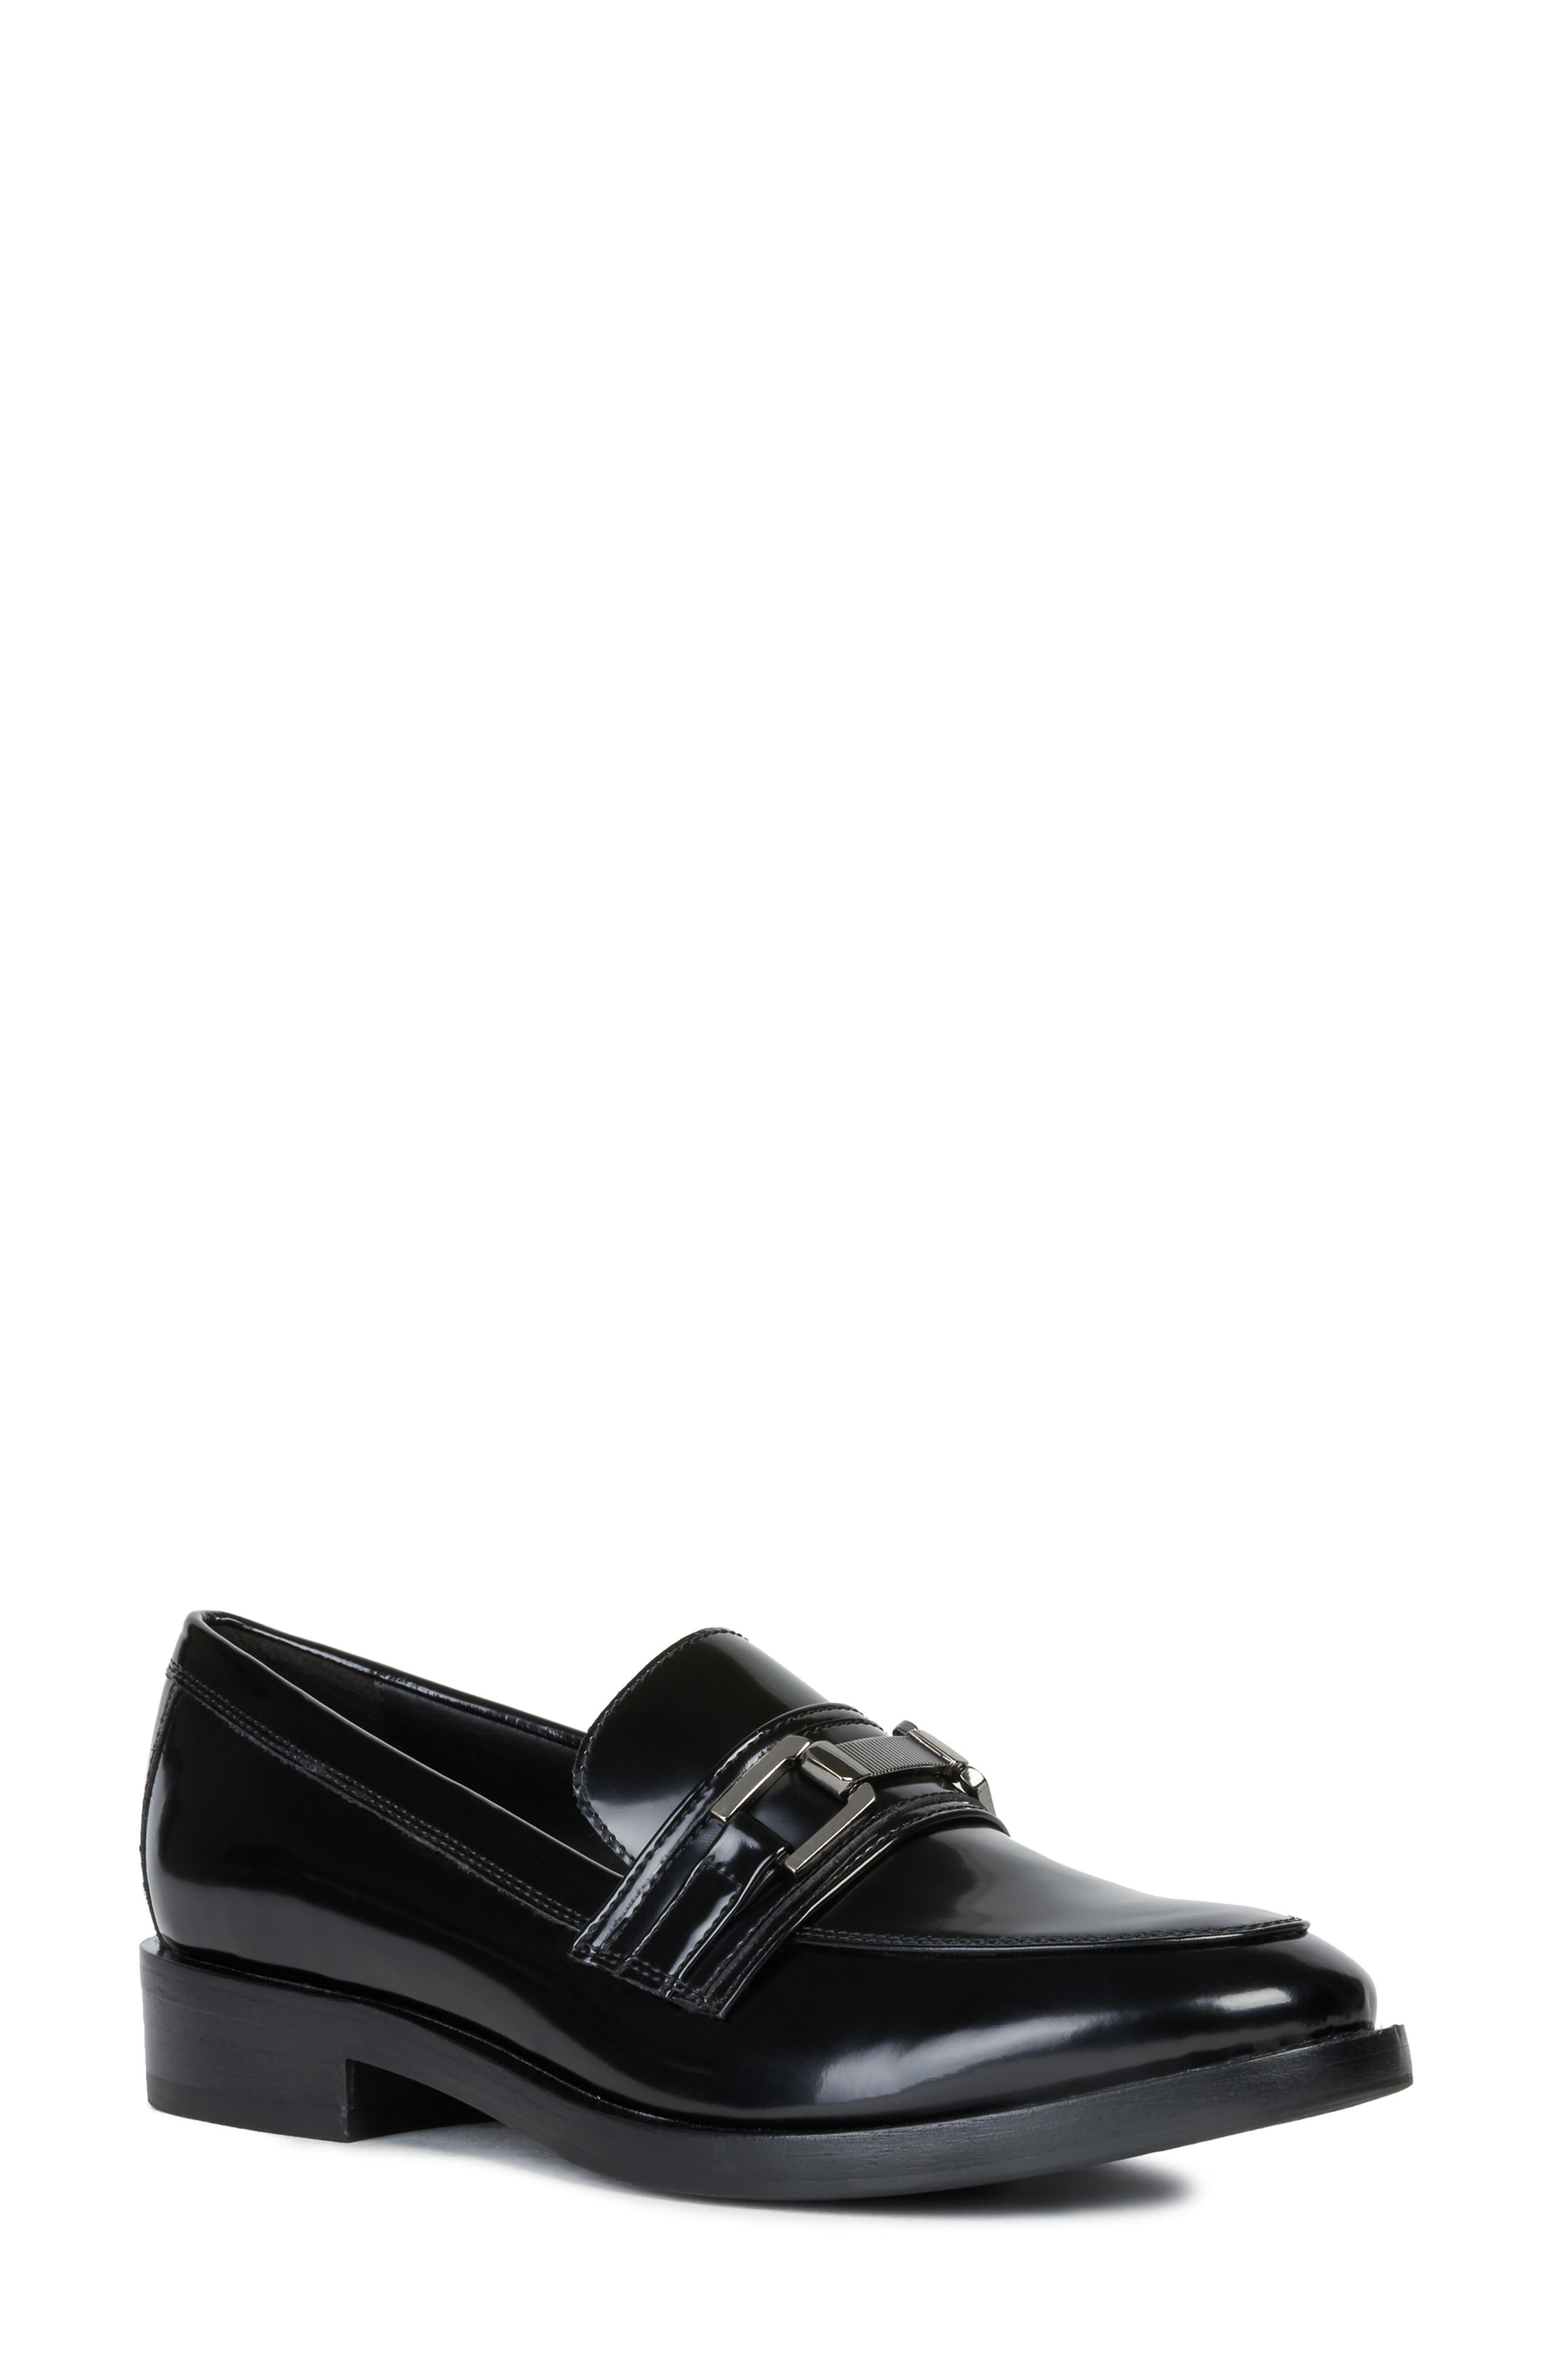 Geox Brogue Loafer, Black